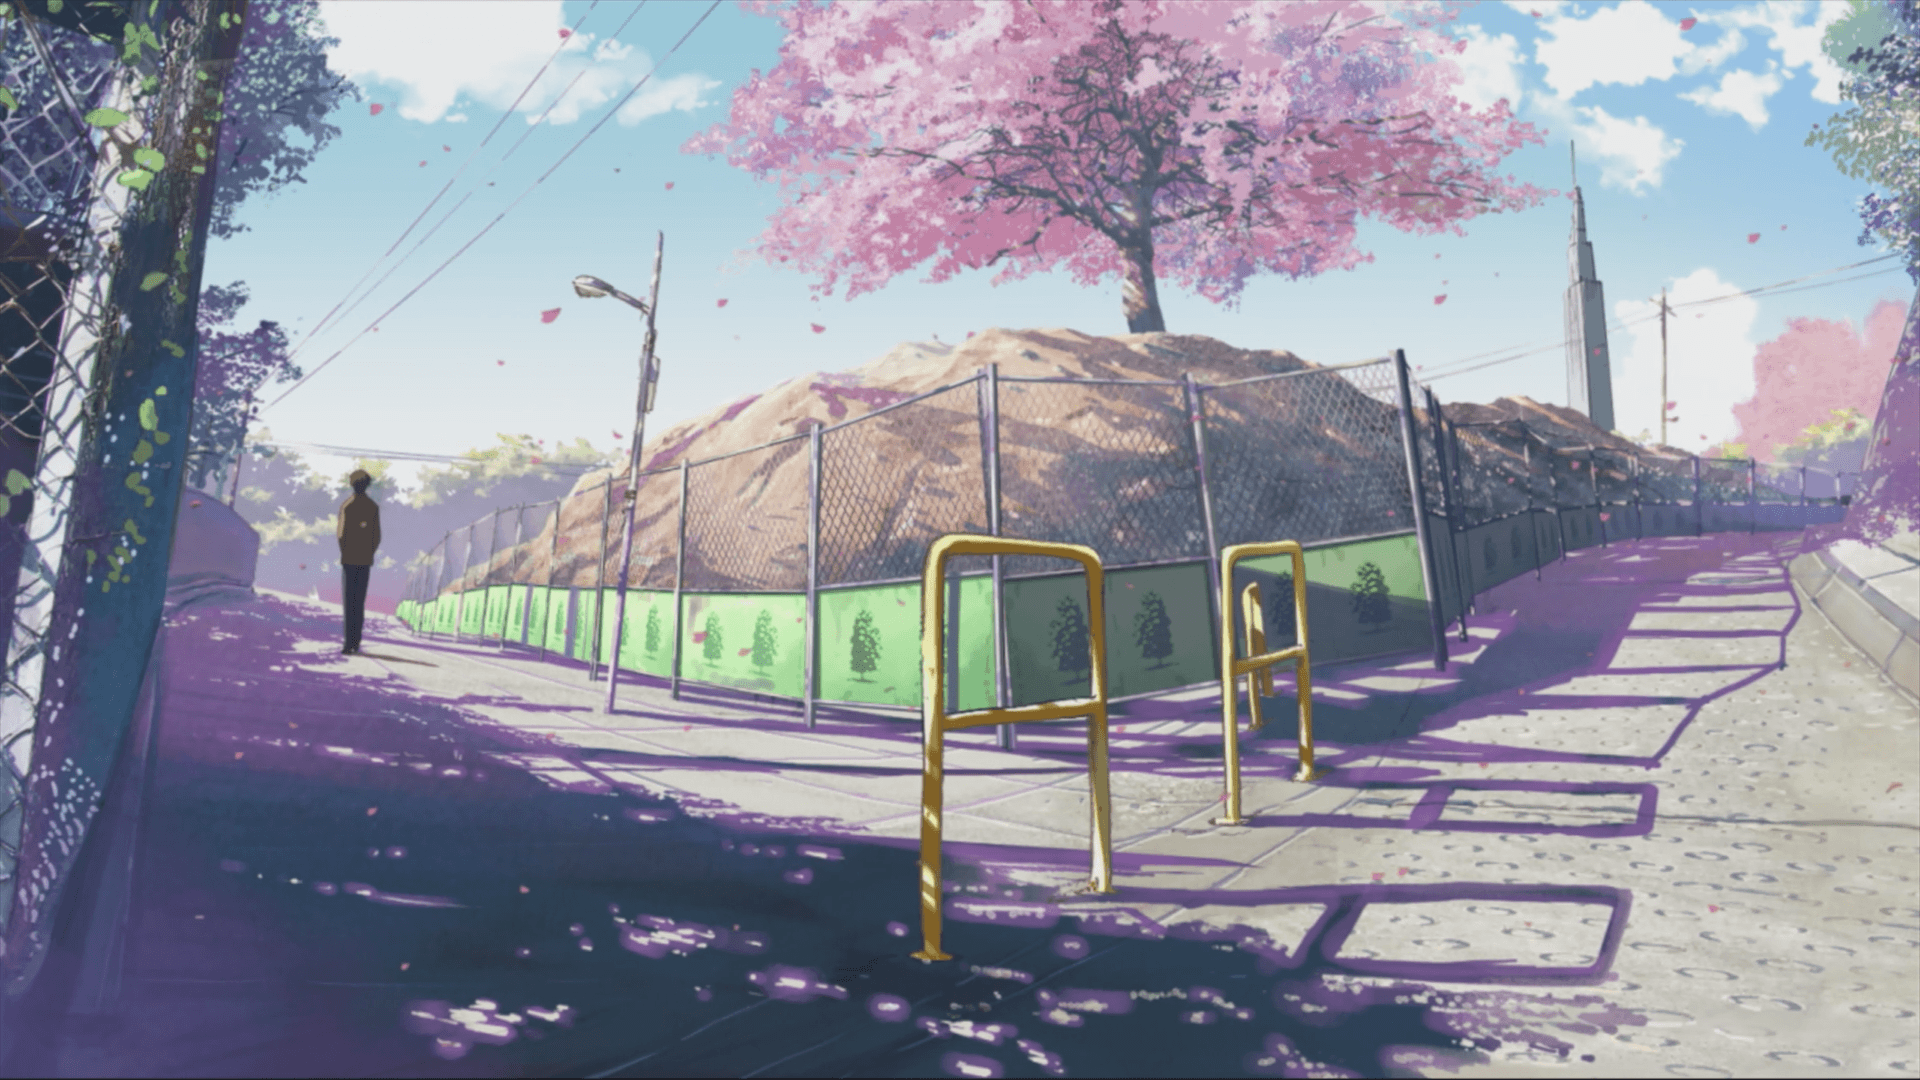 5 Centimeters Per Second Wallpapers 20  Stmed Net